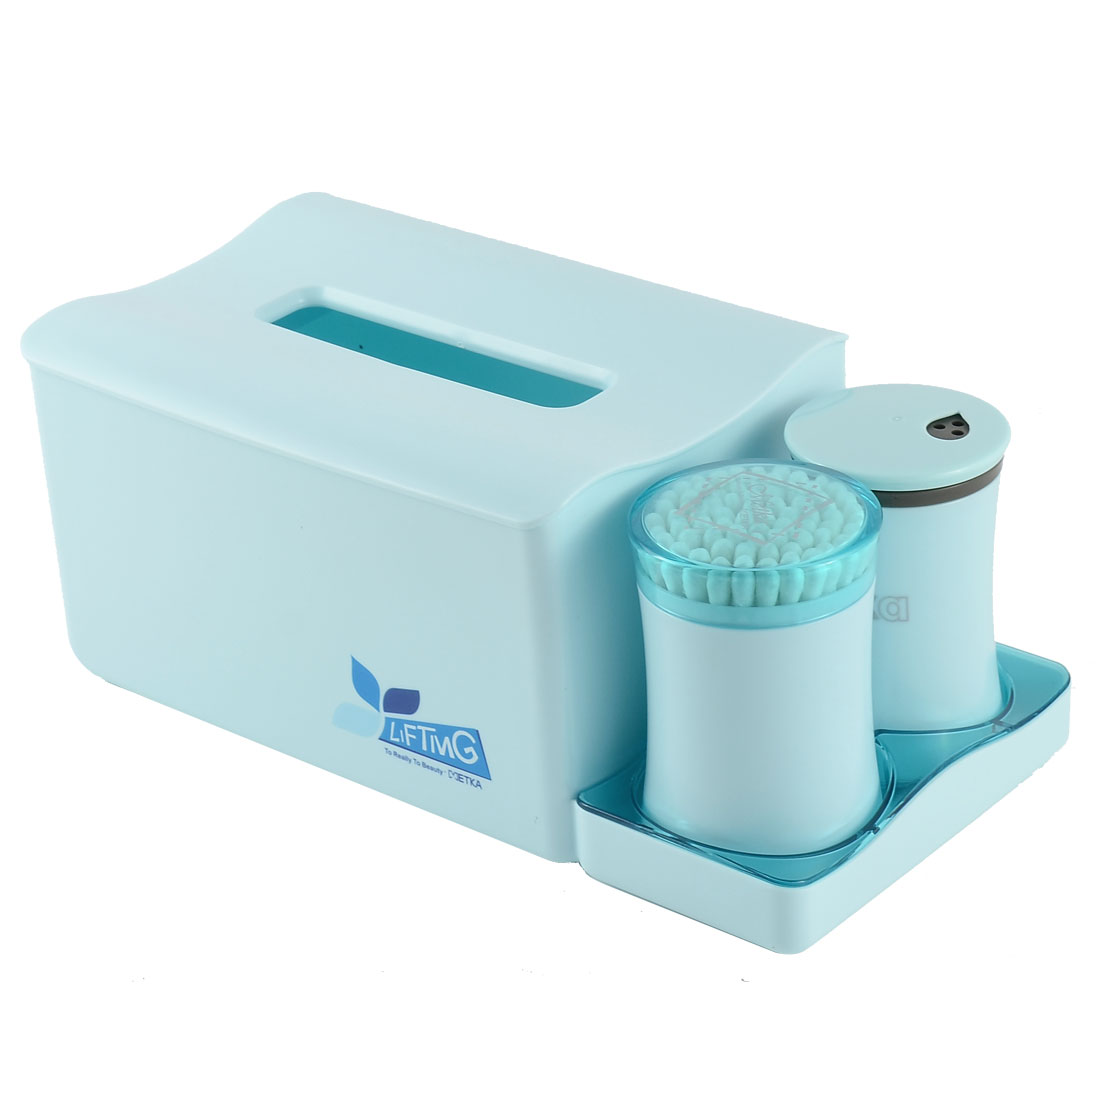 Home Office Dresser Plastic Organizer Holder Toothpicks Cotton Swabs Tissue Box Set Blue